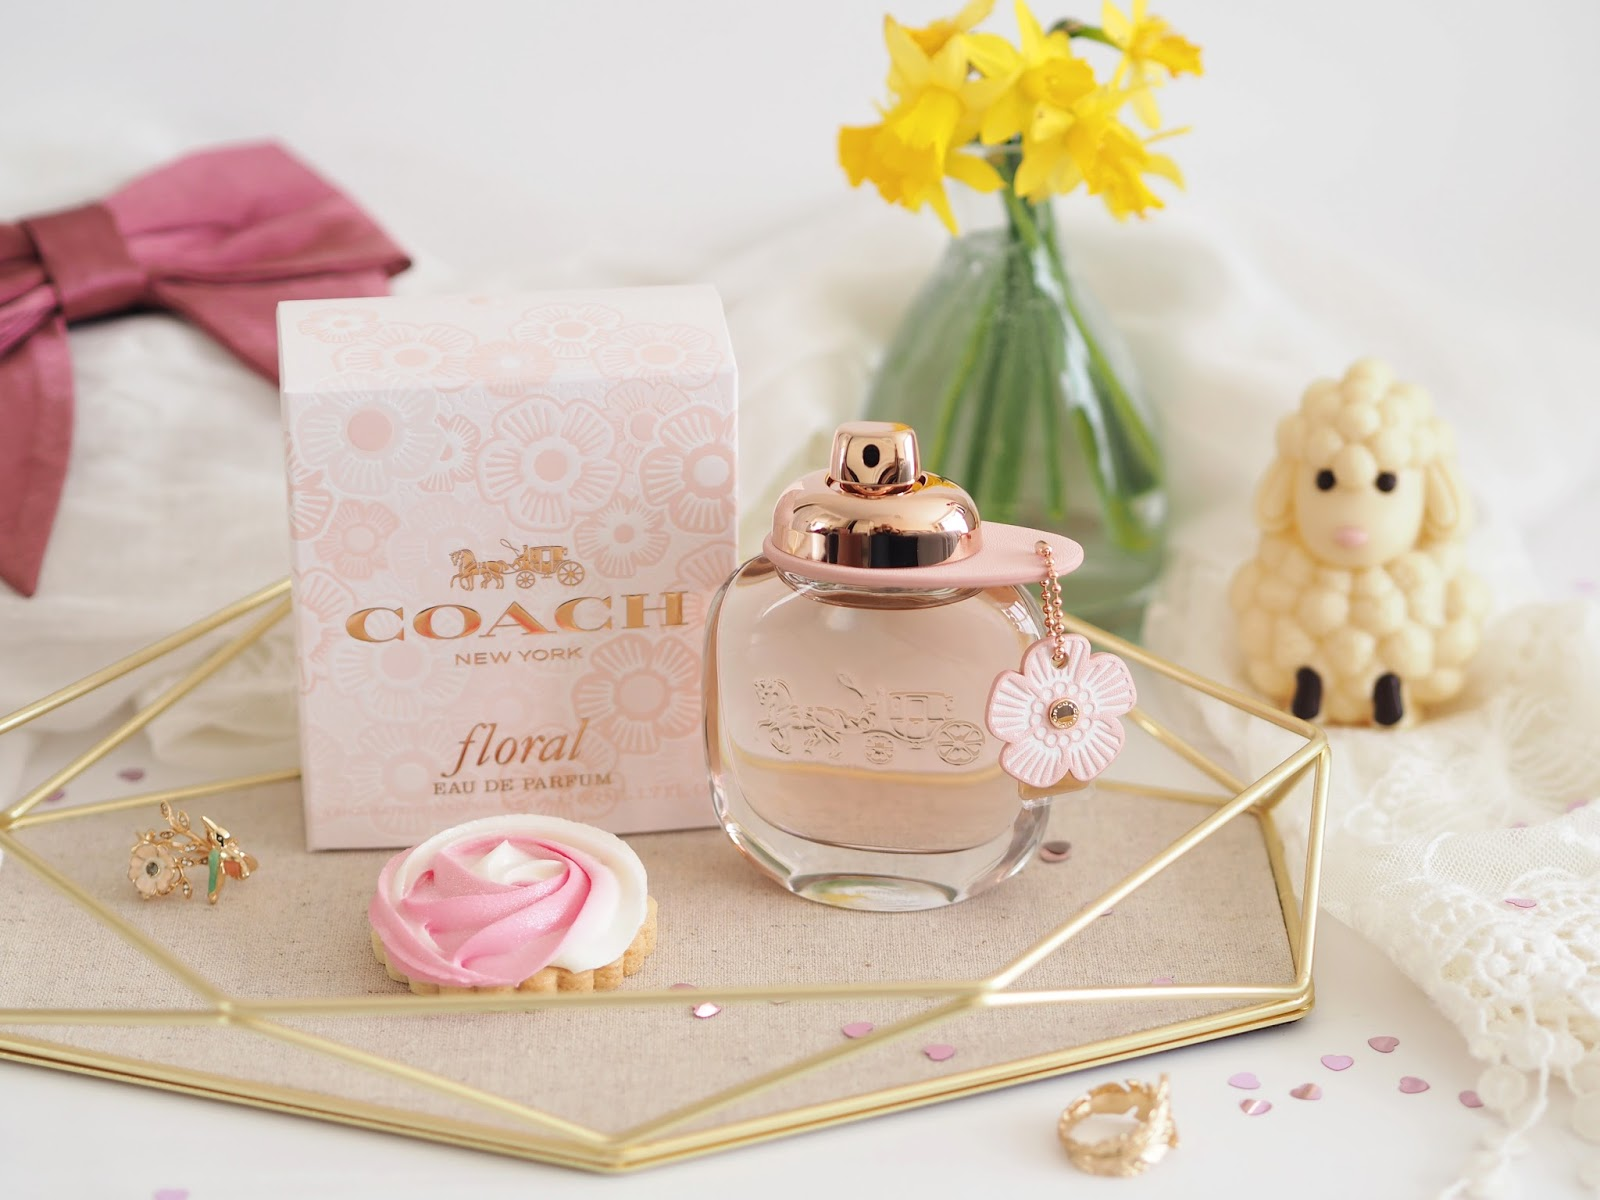 Spring Fragrance Edit, Katie Kirk Loves, UK Blogger, Beauty Blogger, Fragrance Blogger, Spring Scents, Spring Perfume, Fragrance Direct, Spring Ready, 5 Scents For Spring, Floral Fragrances